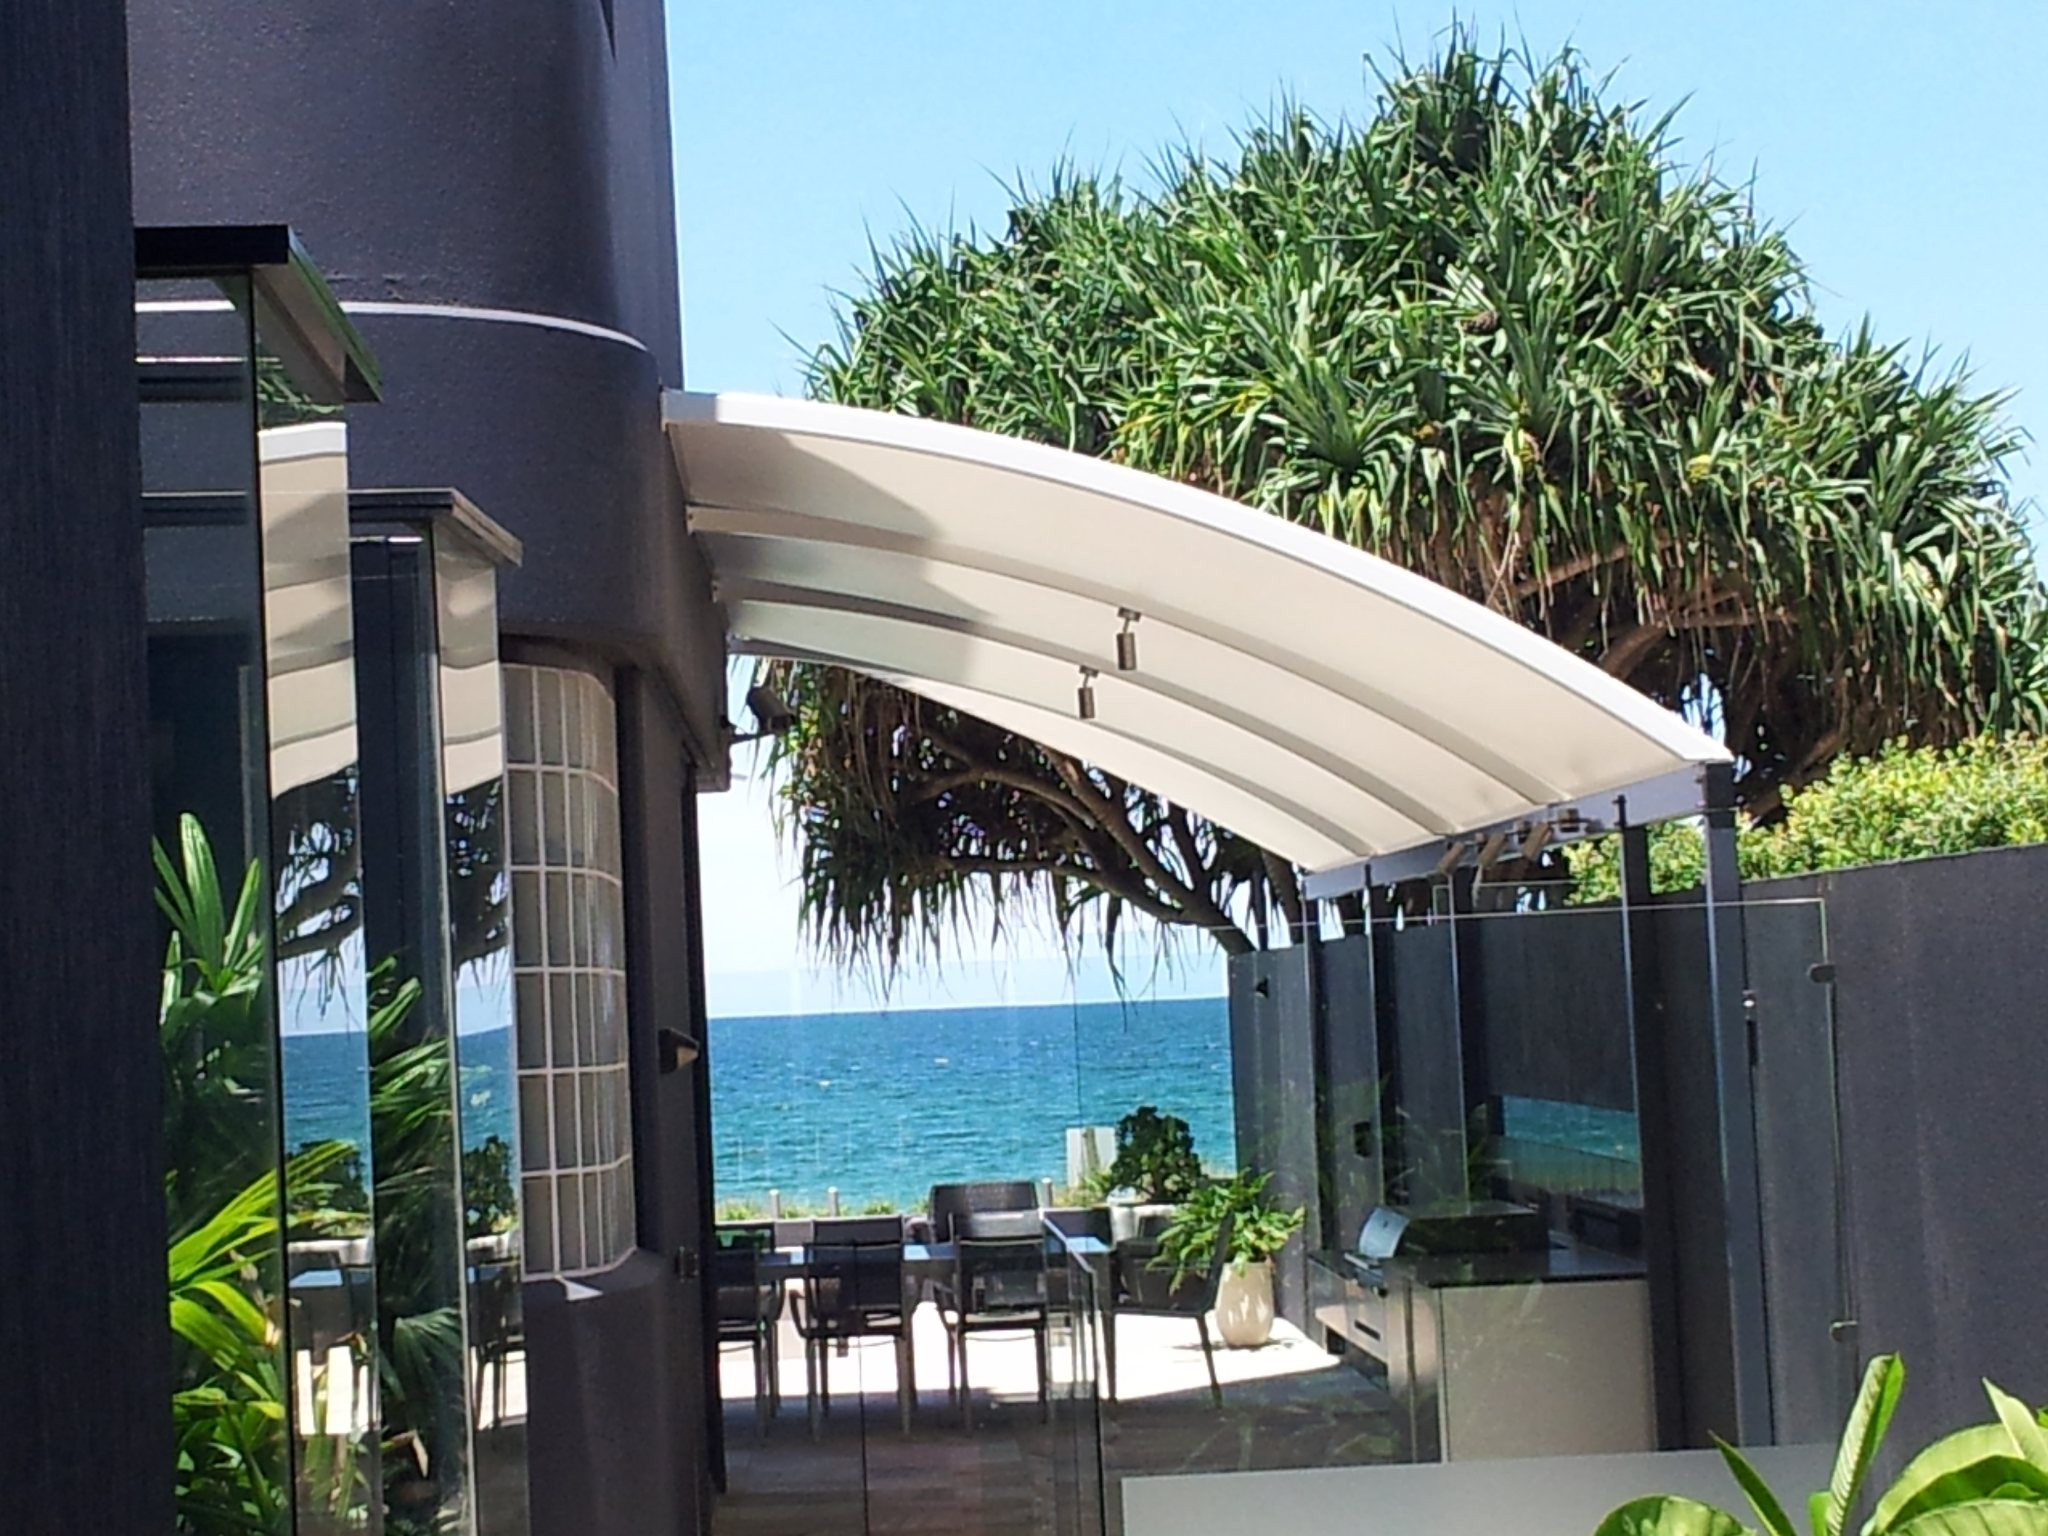 Curved Waterproof Shade Sails Structure for Outdoor entertainment Area & Portfolio | Home Business Public Shade Sails Specialists